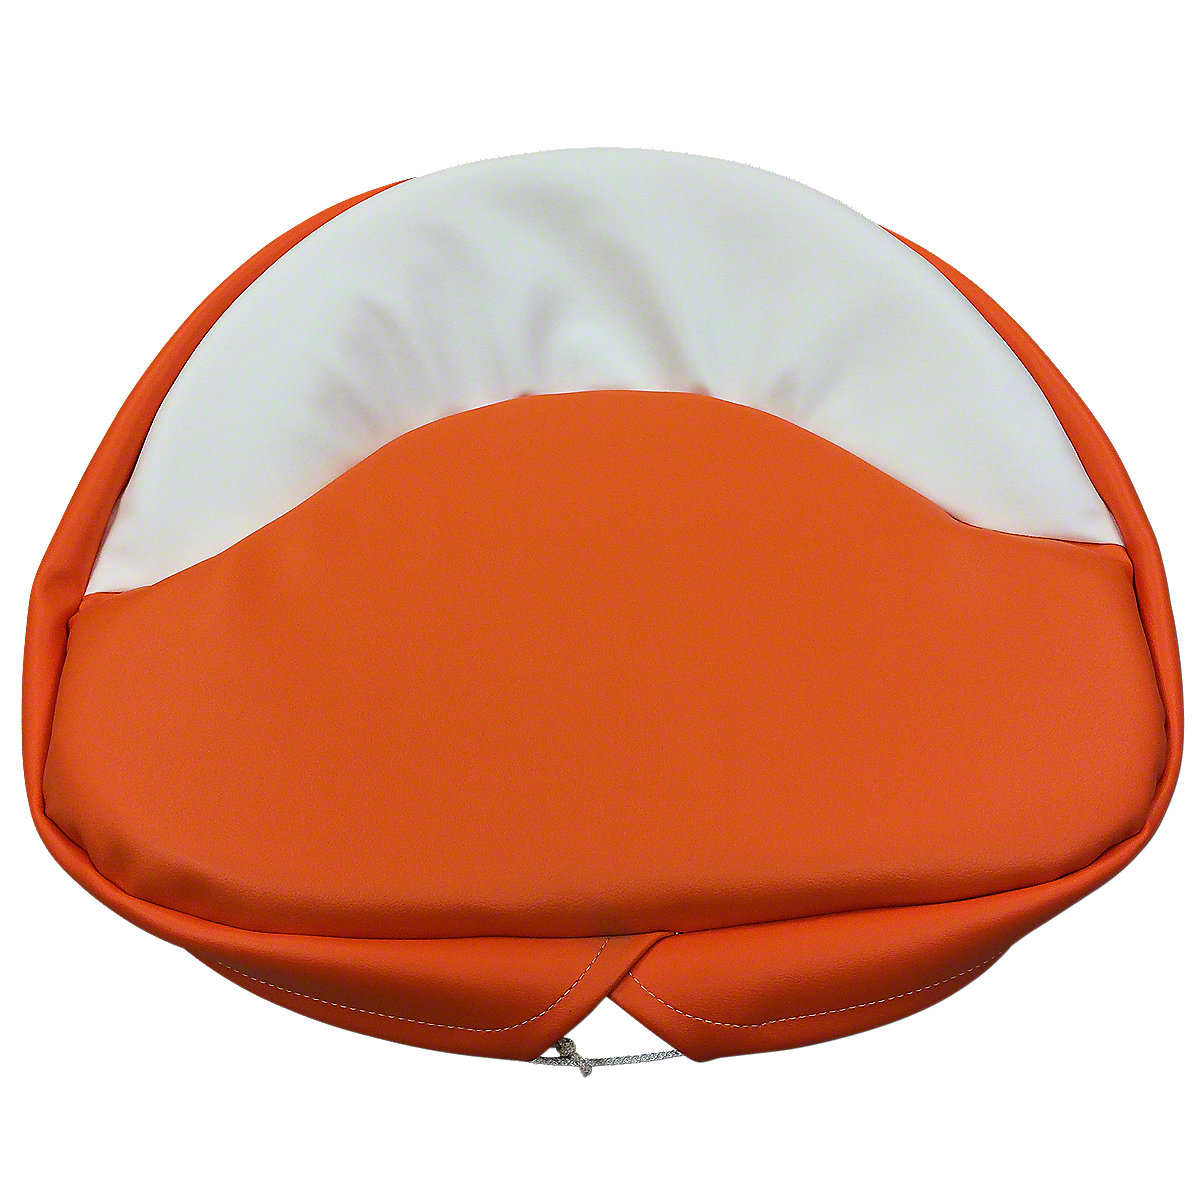 21 Orange And White Seat Pad For Allis Chalmers:  B, C, CA, D10, D12, D14, D15, D17, D19, D21, G, RC, U, WC, WD, WD45, WF, 170, 175, 180, 185, 190, 190XT, 210, 220, 7000, 7030, 7040, 7050, 7060, 7080.